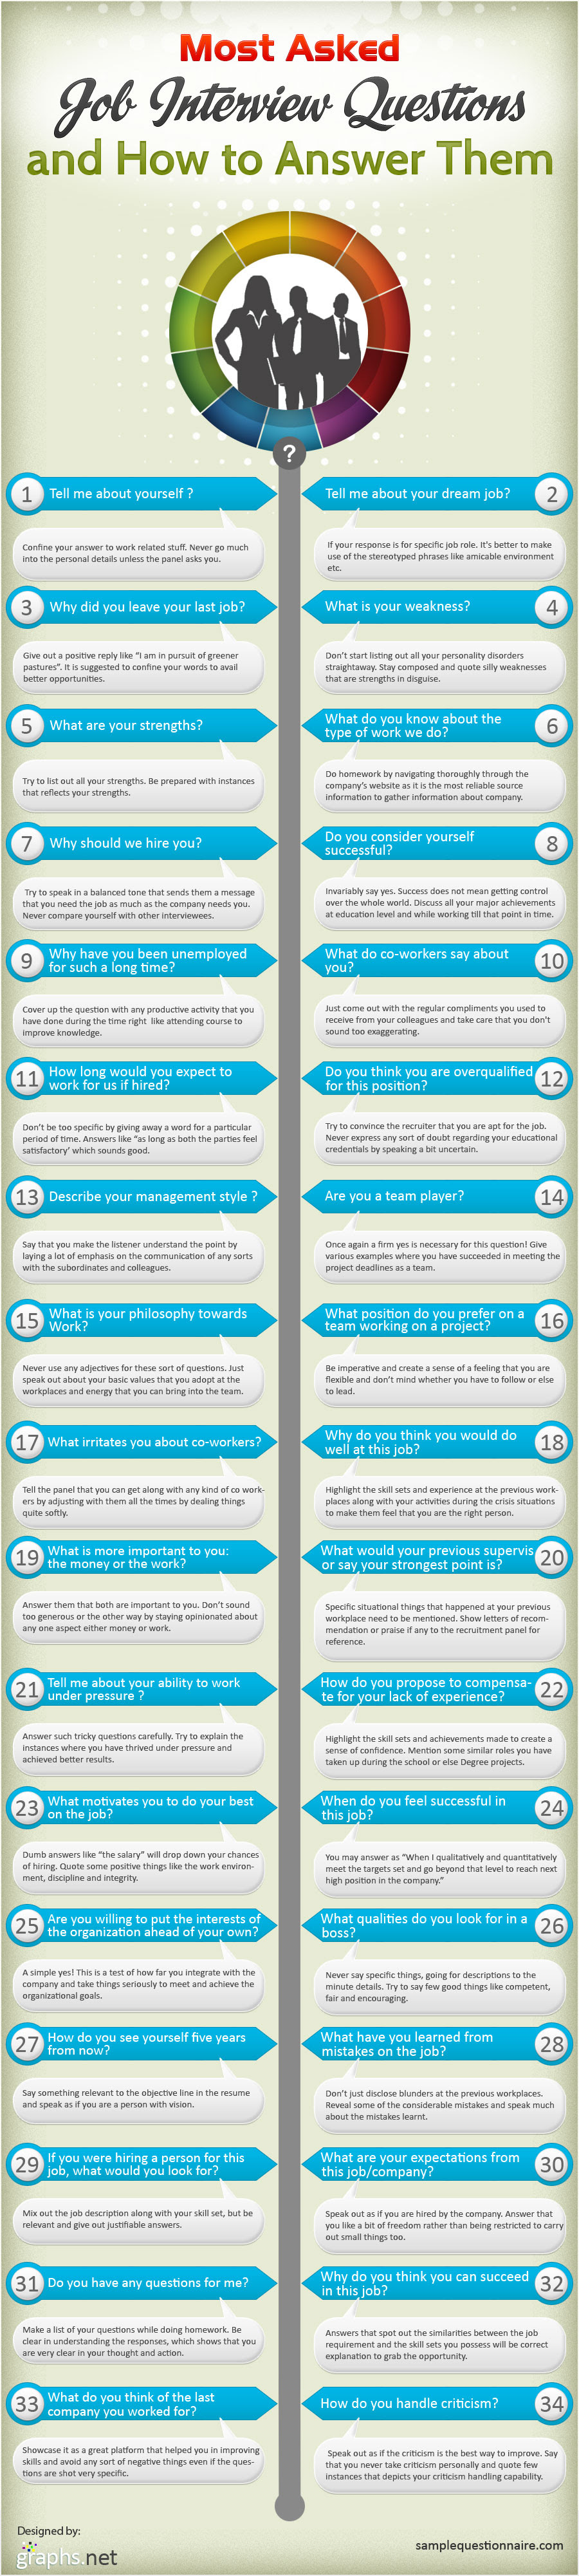 How To Answer Most Commonly Asked Question At Job Interview : infographic you wish you'd know questions before your job interview